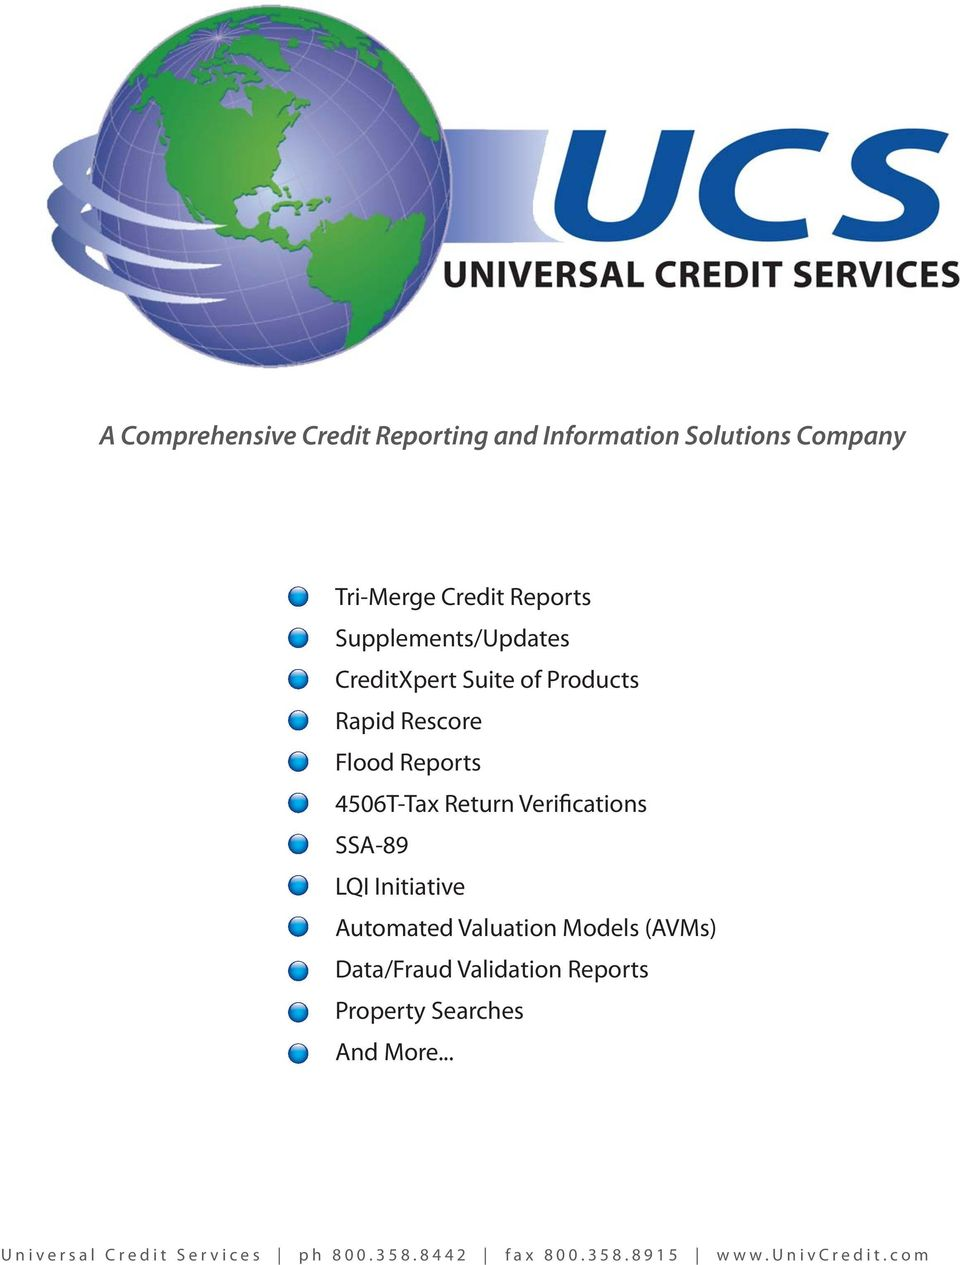 A Comprehensive Credit Reporting and Information Solutions